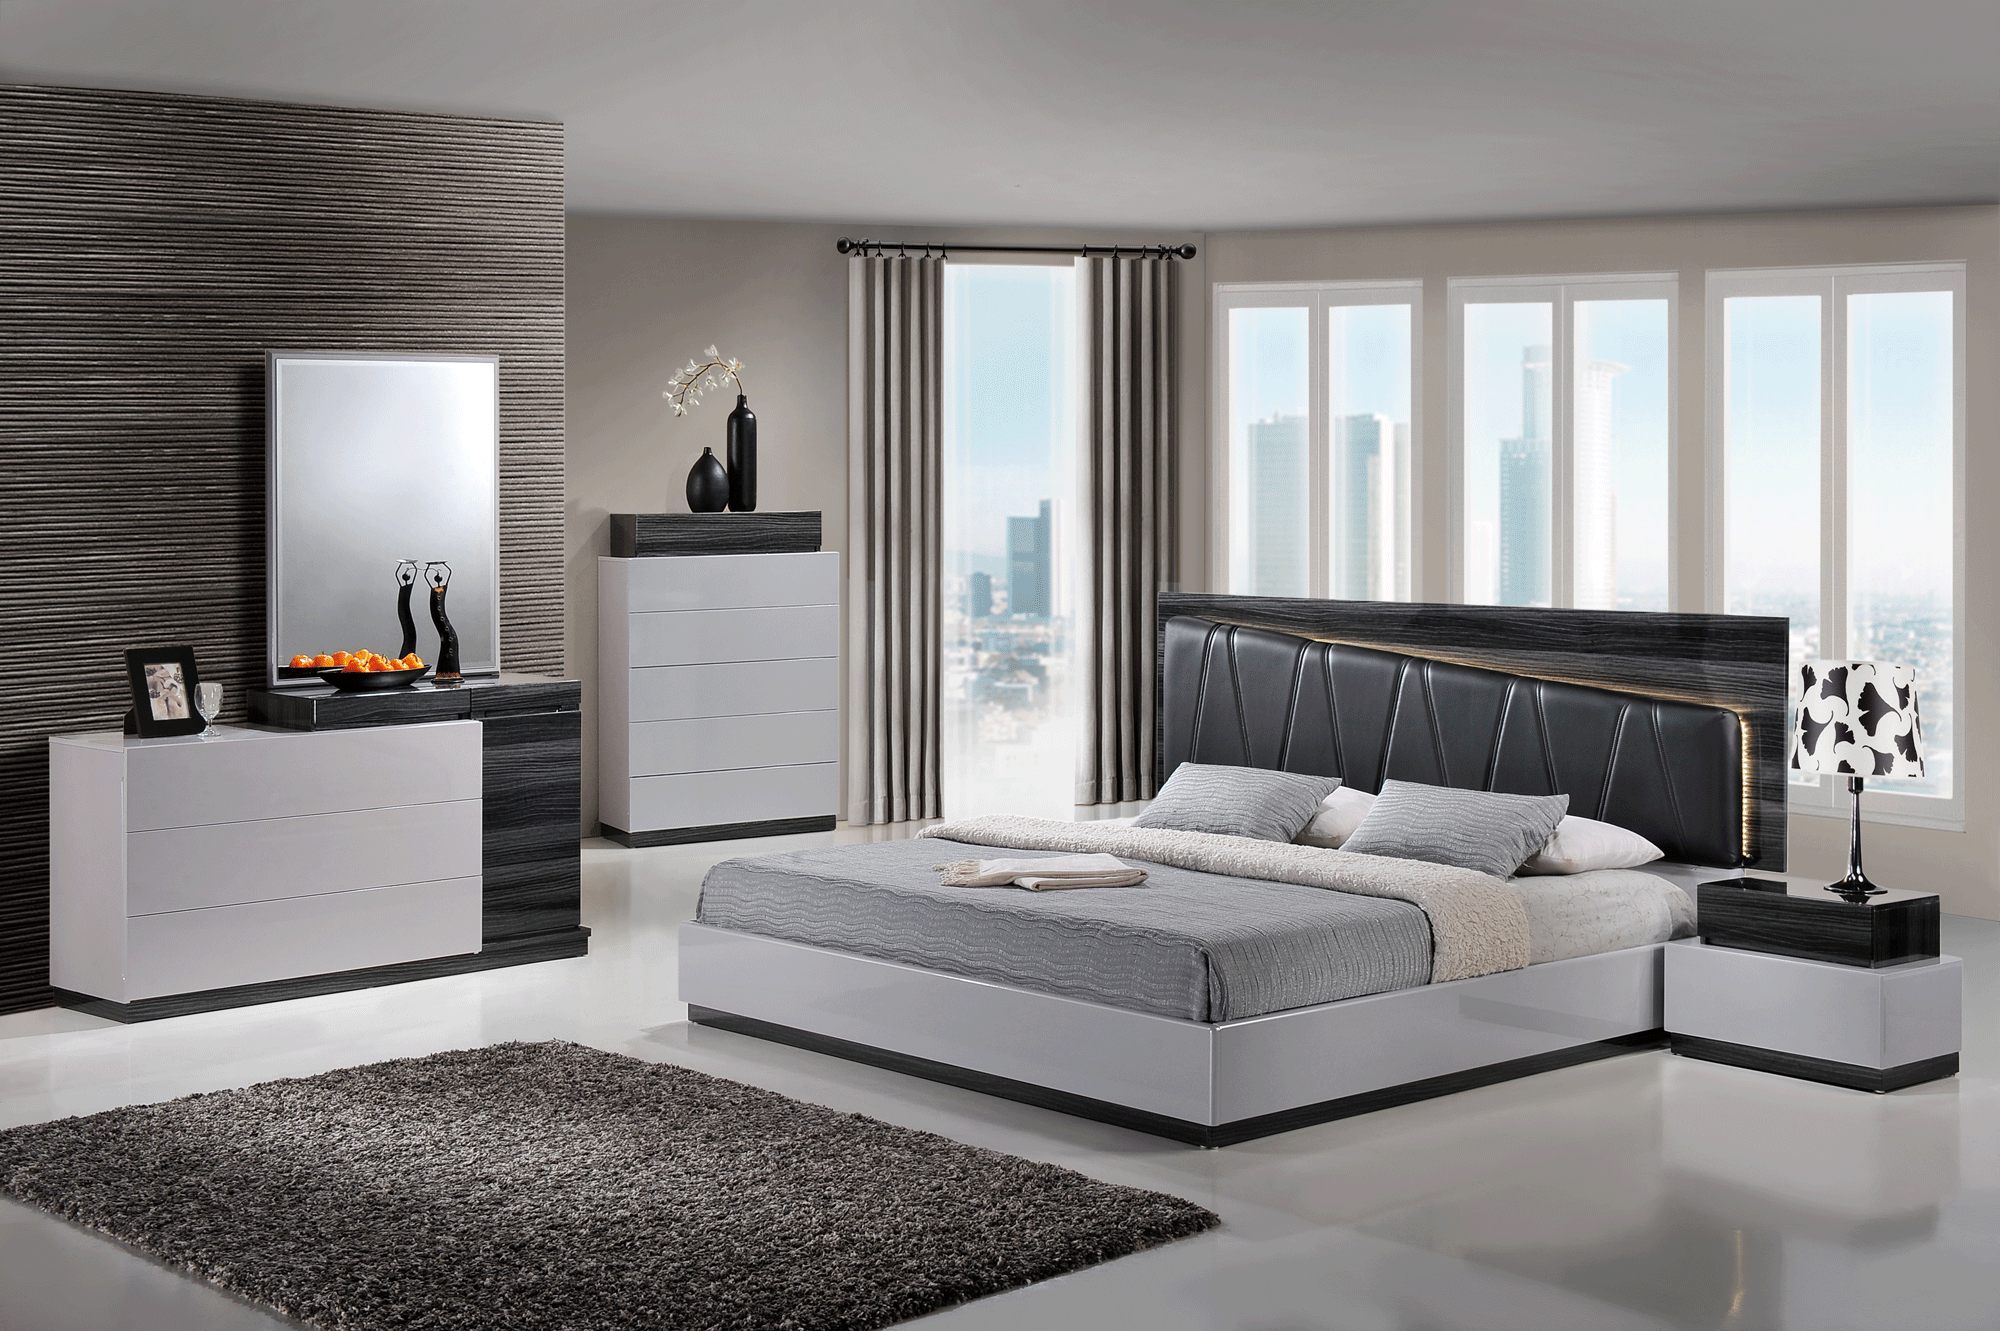 Lexi Silver Line & Zebra Grey Black PU Bedroom Set by Global Furniture